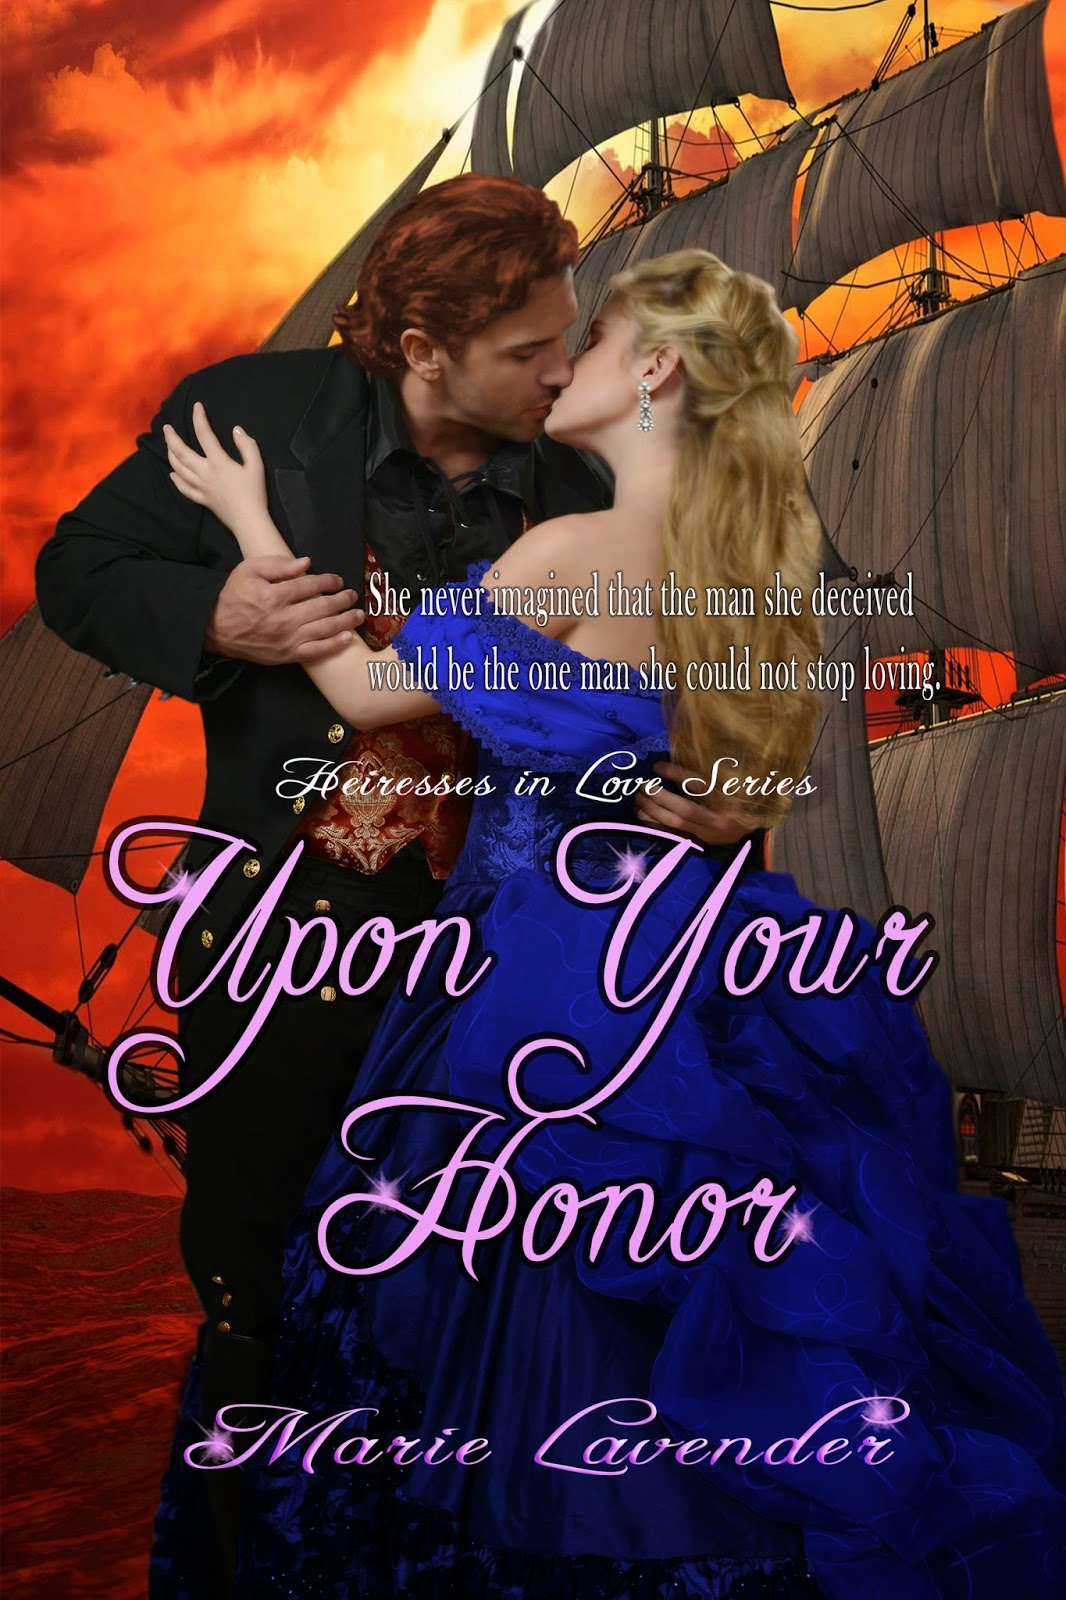 http://www.amazon.com/Upon-Your-Honor-Marie-Lavender-ebook/dp/B00JTKTODG/ref=cm_rdp_product